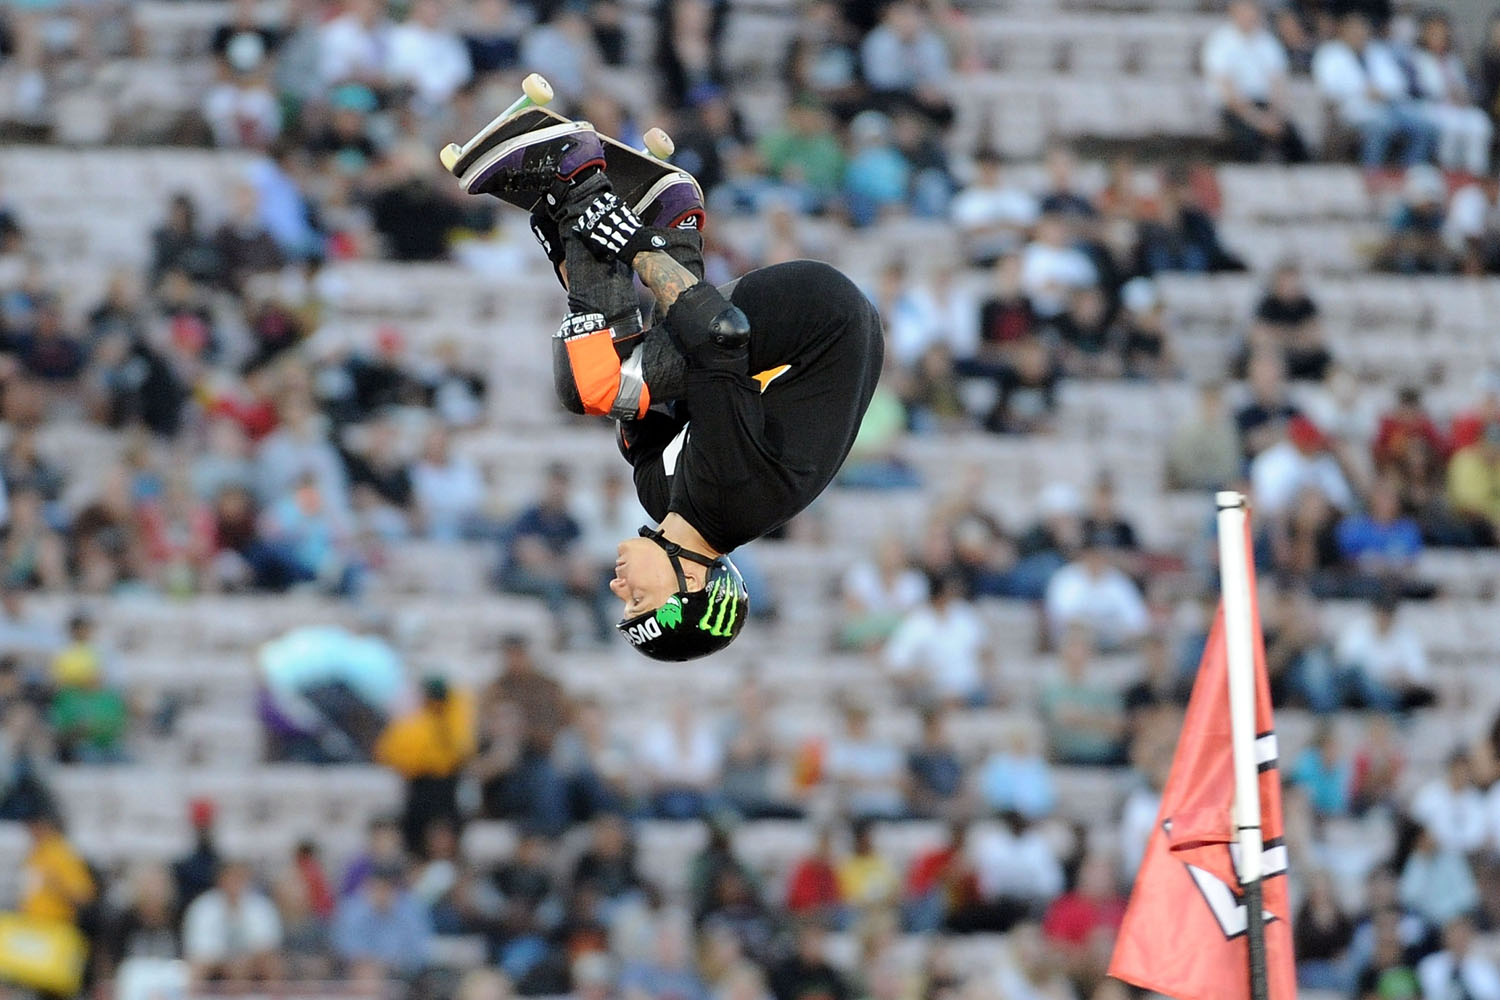 Jake Brown competes to a gold medal in the Skateboard Big Air final during X Games 16 at the LA Coliseum on July 29, 2010 in Los Angeles, California.